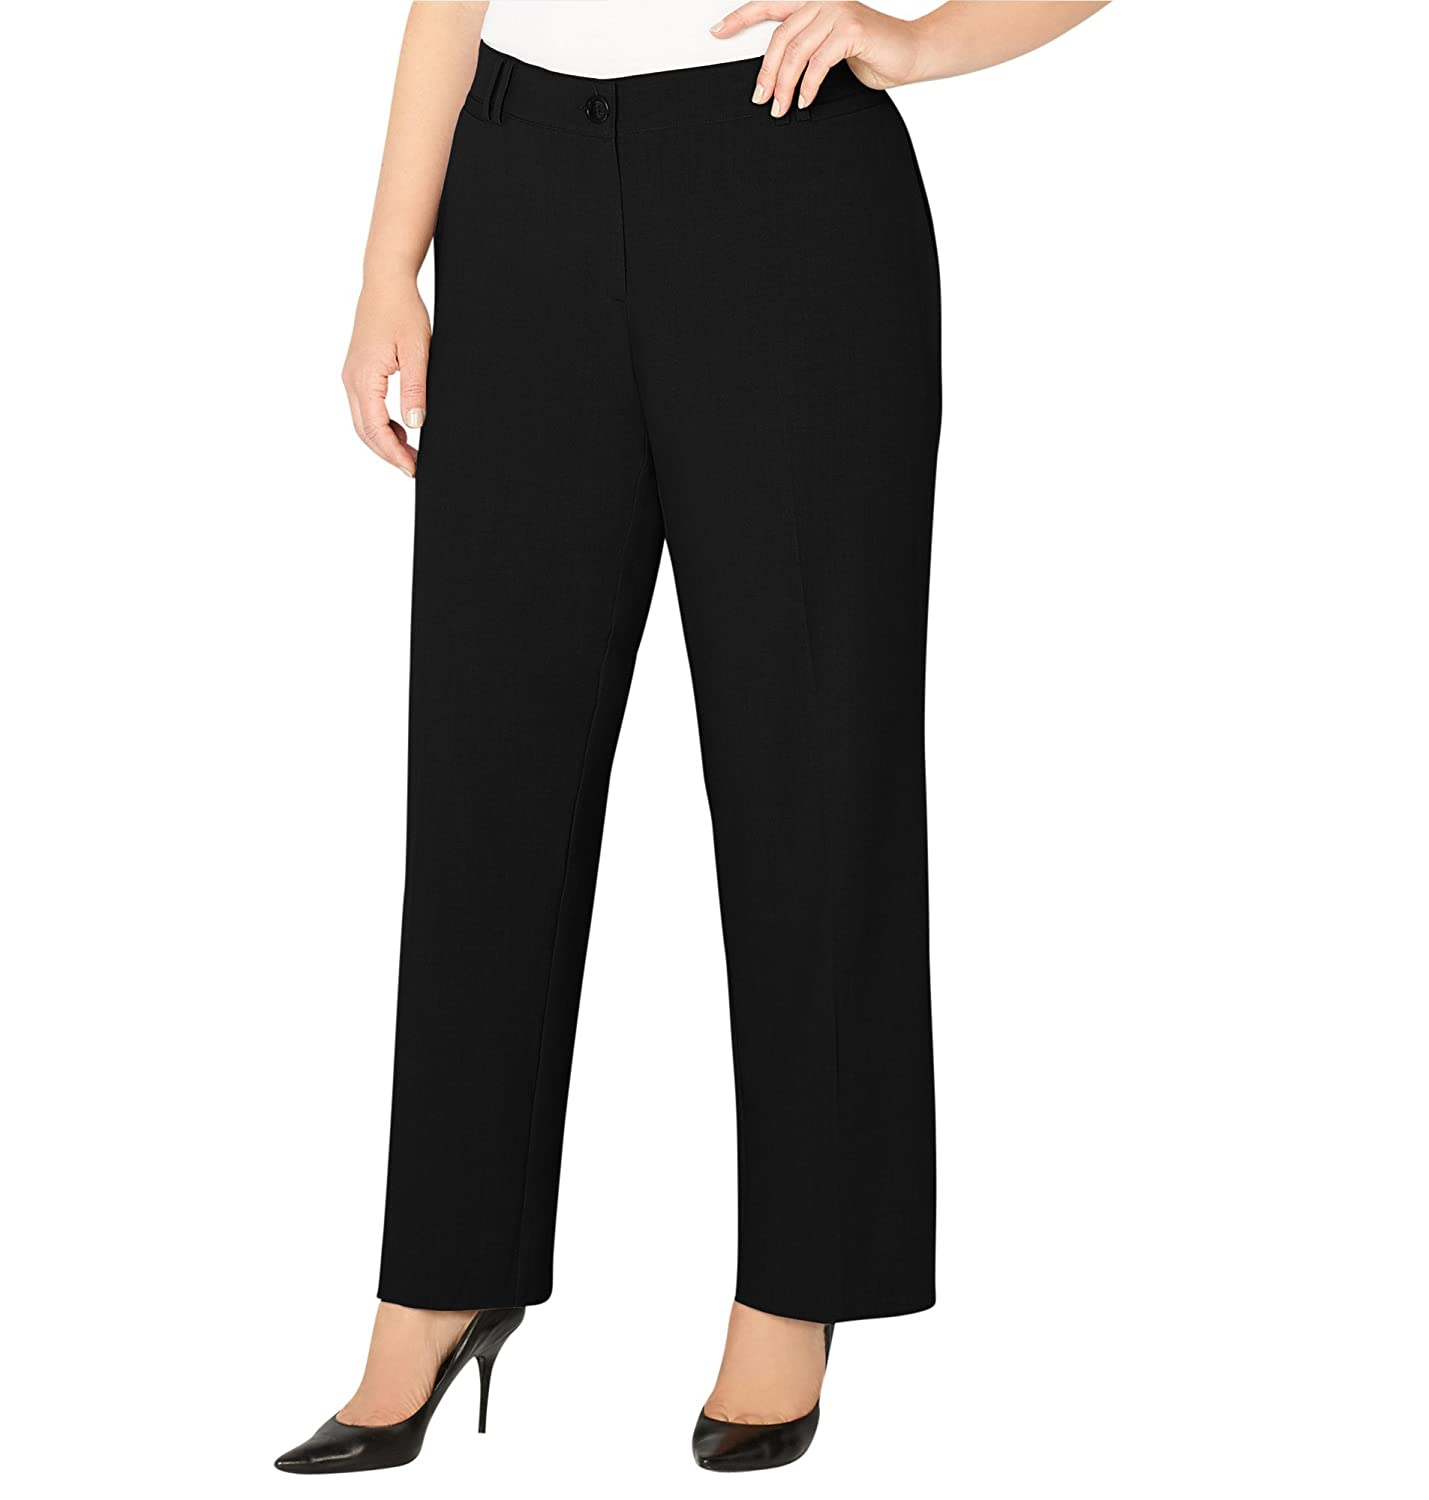 962e94a0f0 Add the perfect fit and added comfort to all of your work outfits with our  best-selling bi-stretch. This plus size No Gap pant is your go-to pant for  the ...